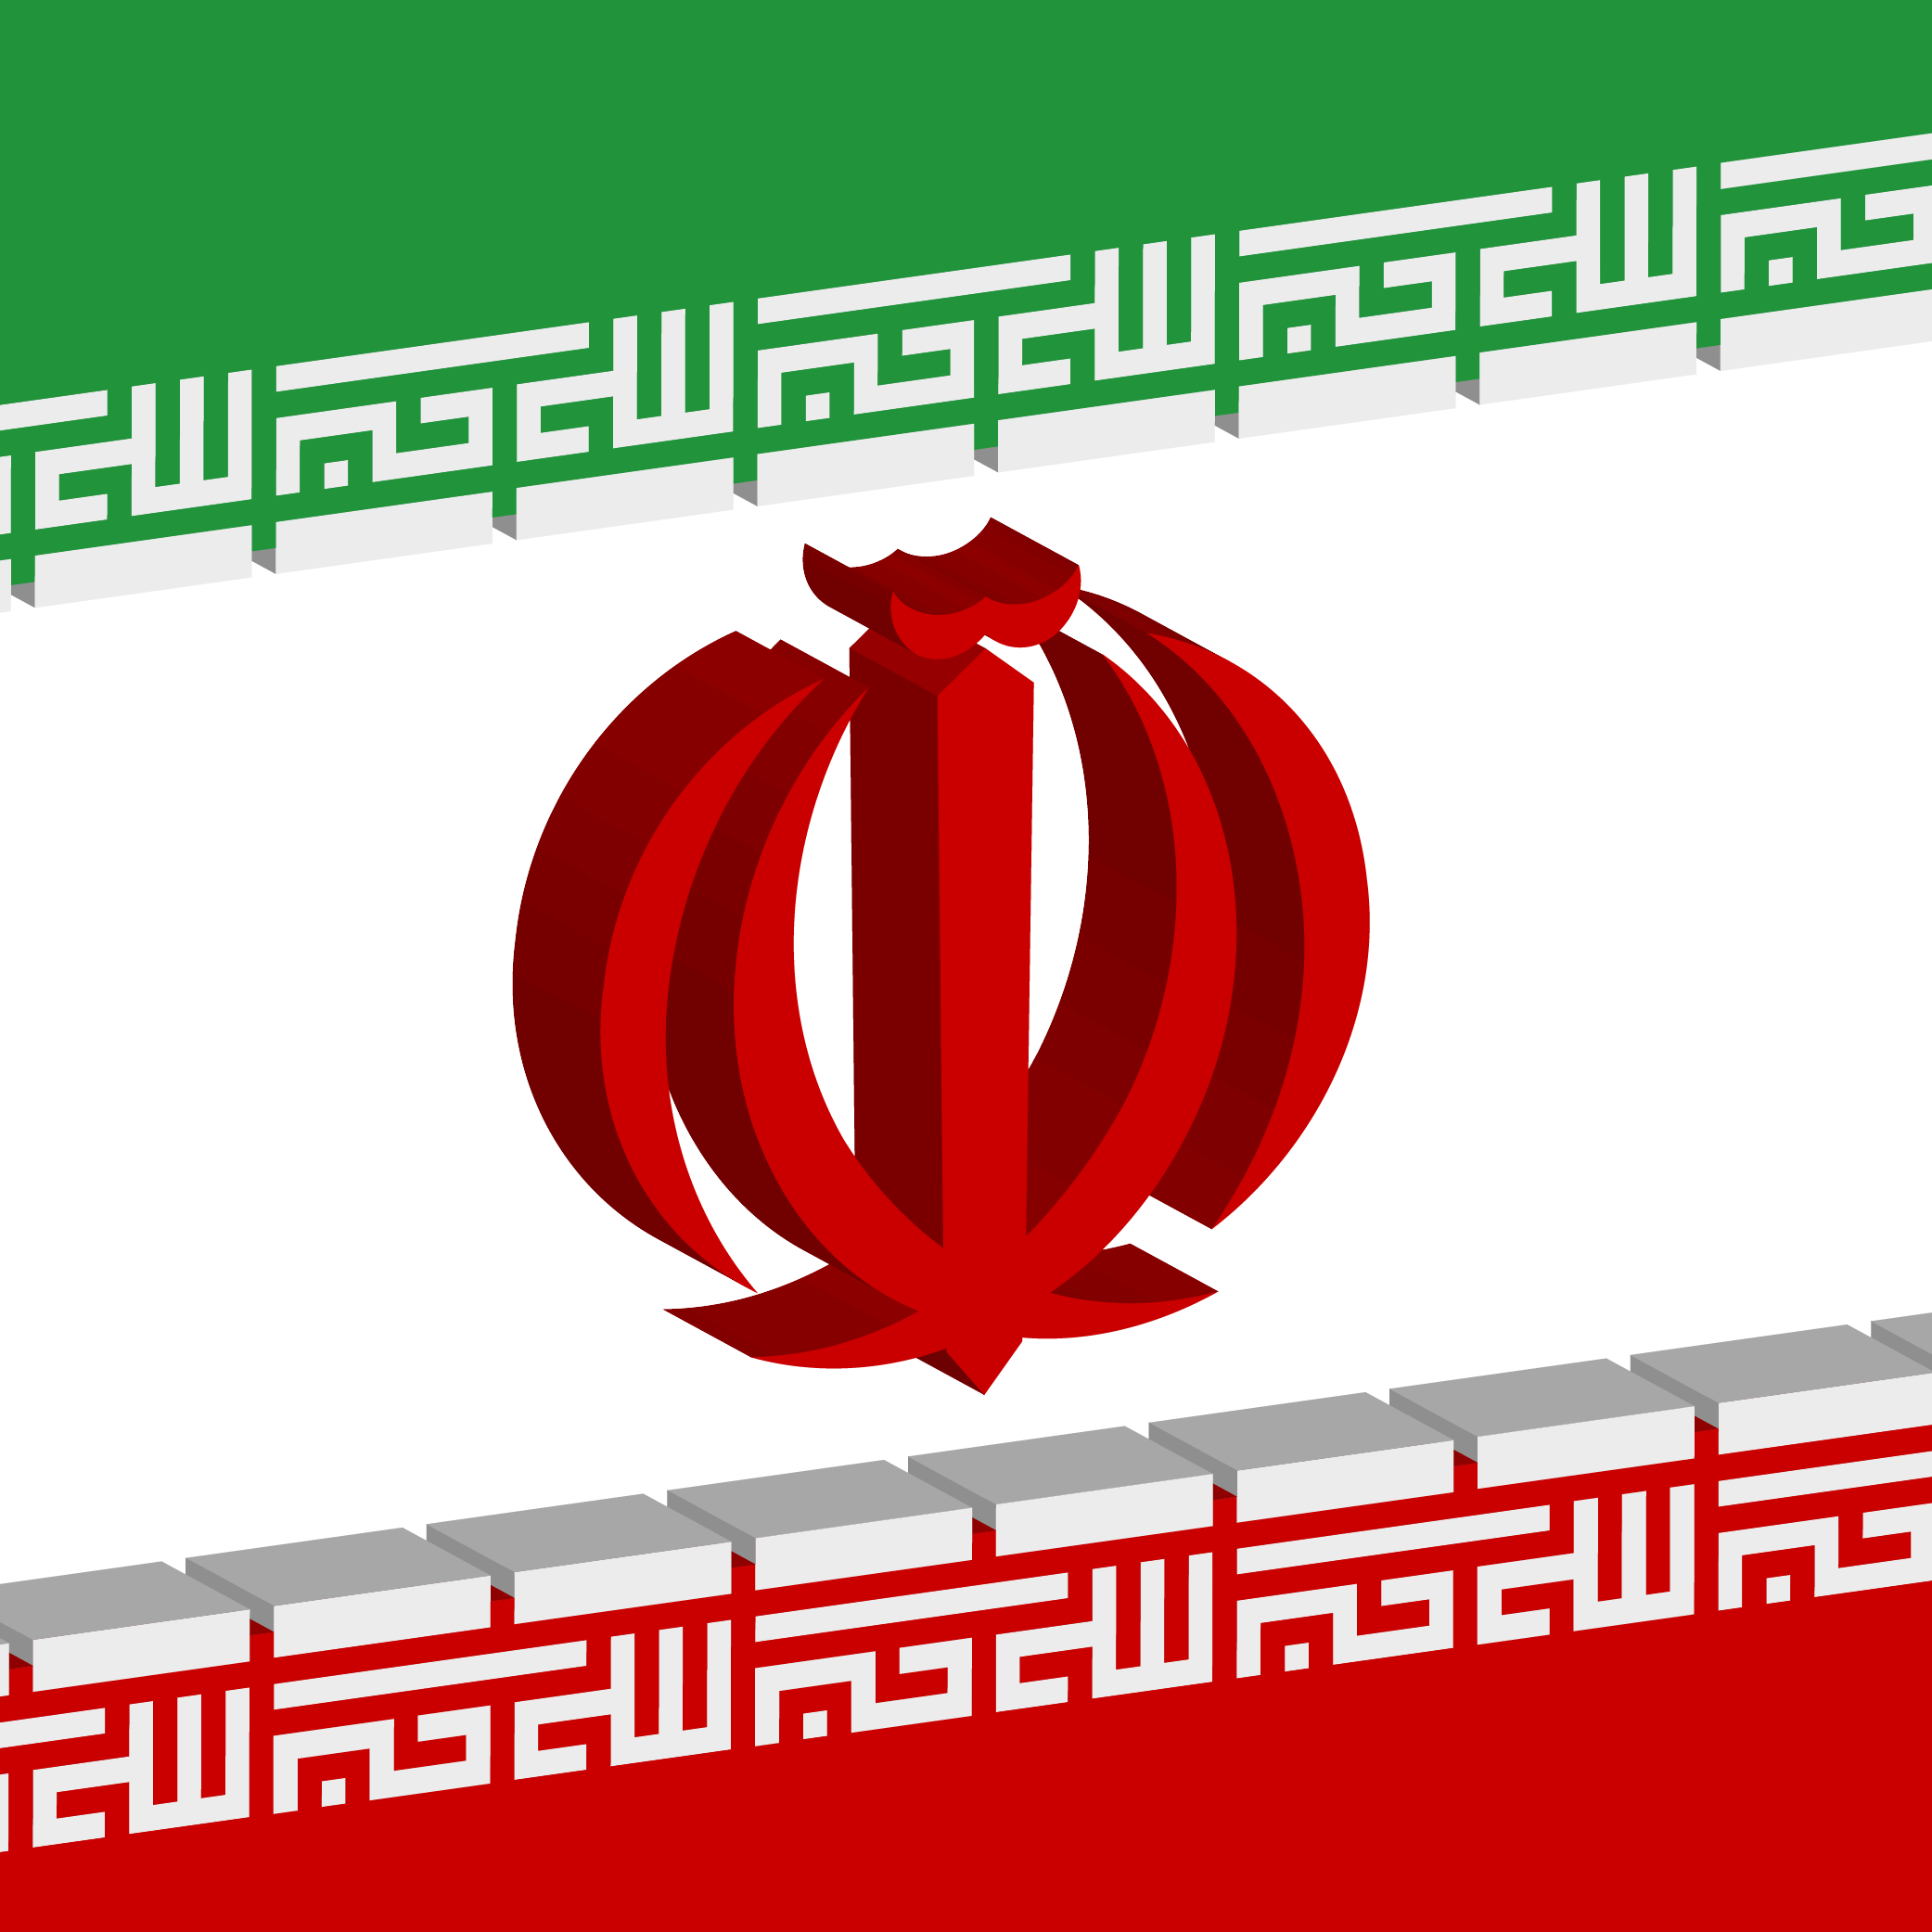 Flag_of_Iran-01